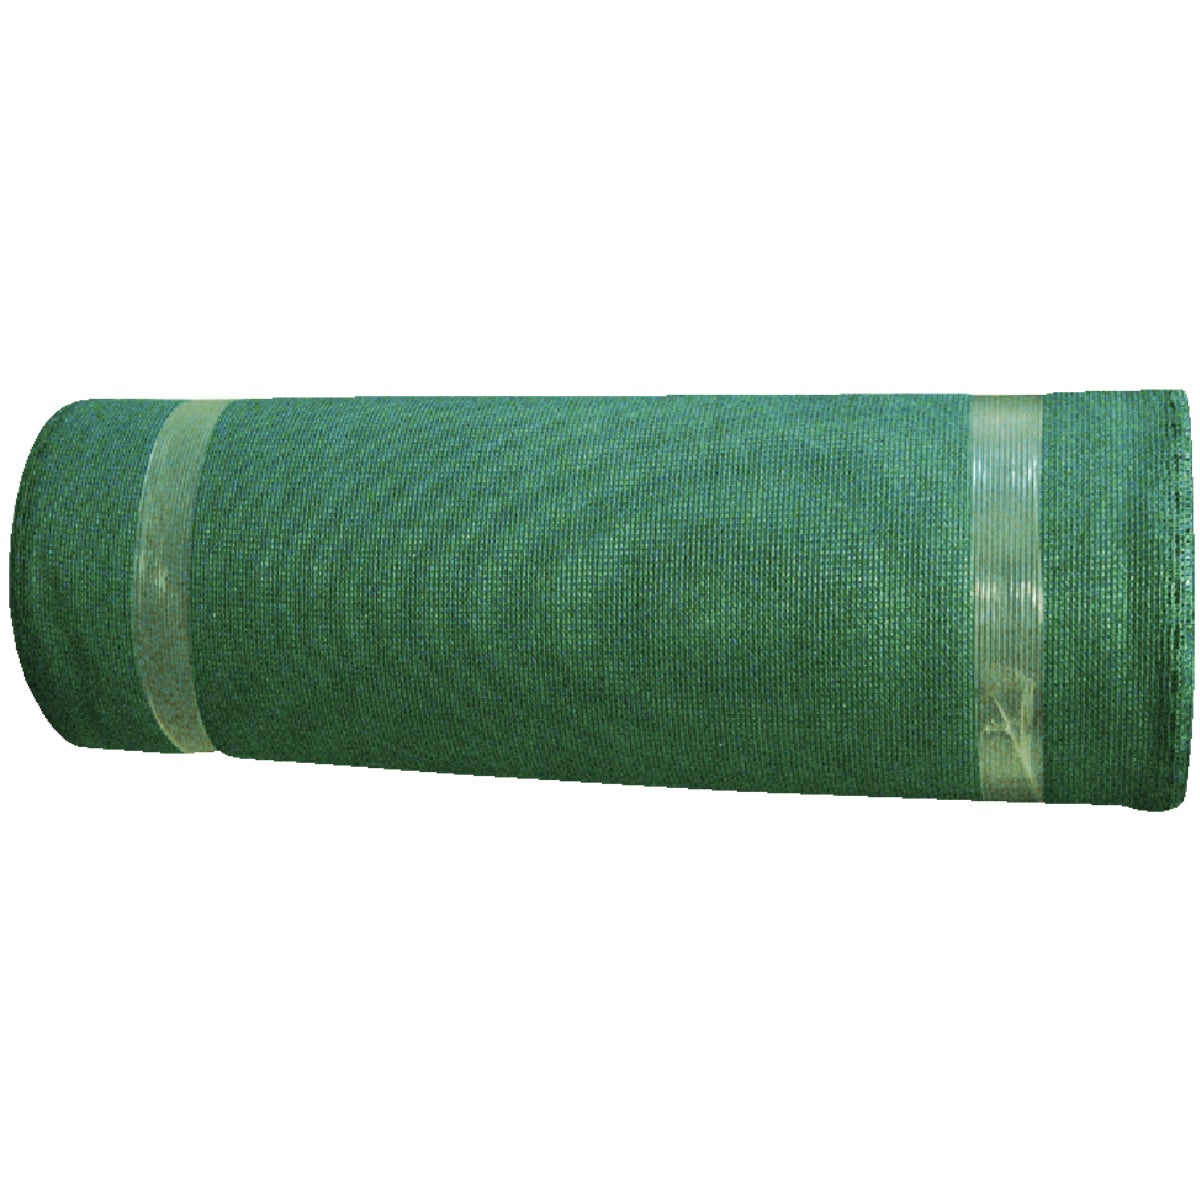 6X100 70% UV GREEN SHADE - 439736 by Gale Pacific Coolaro